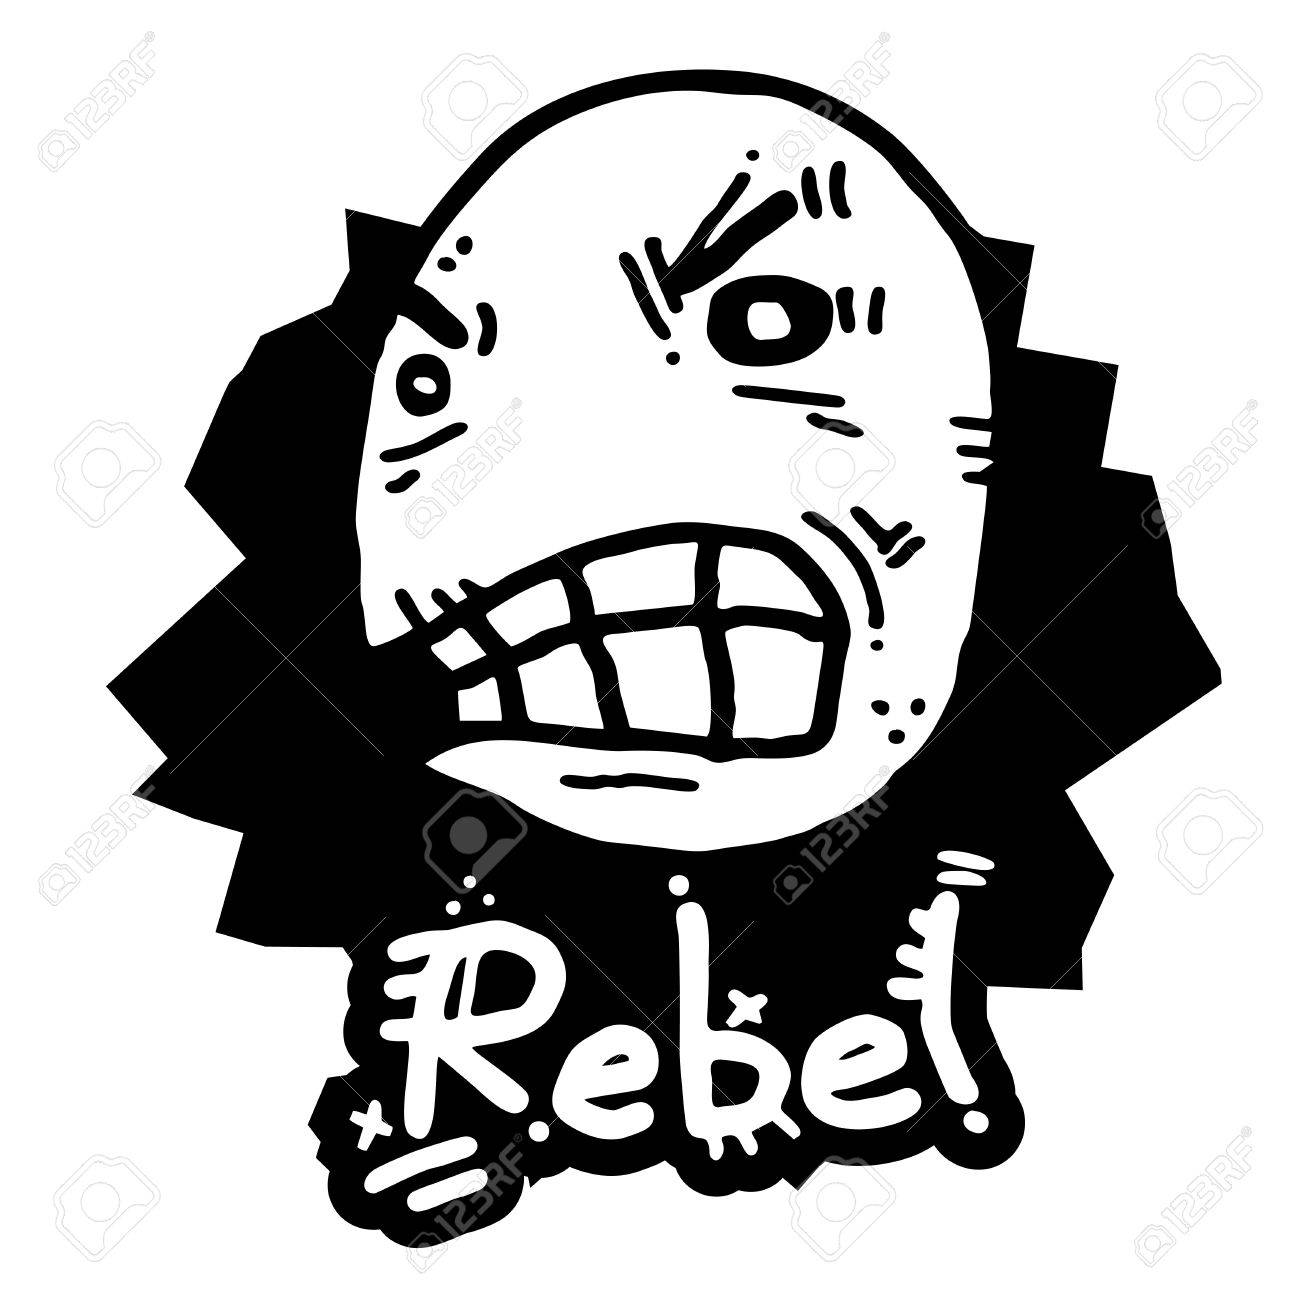 Rebel face doll Stock Vector - 15885024